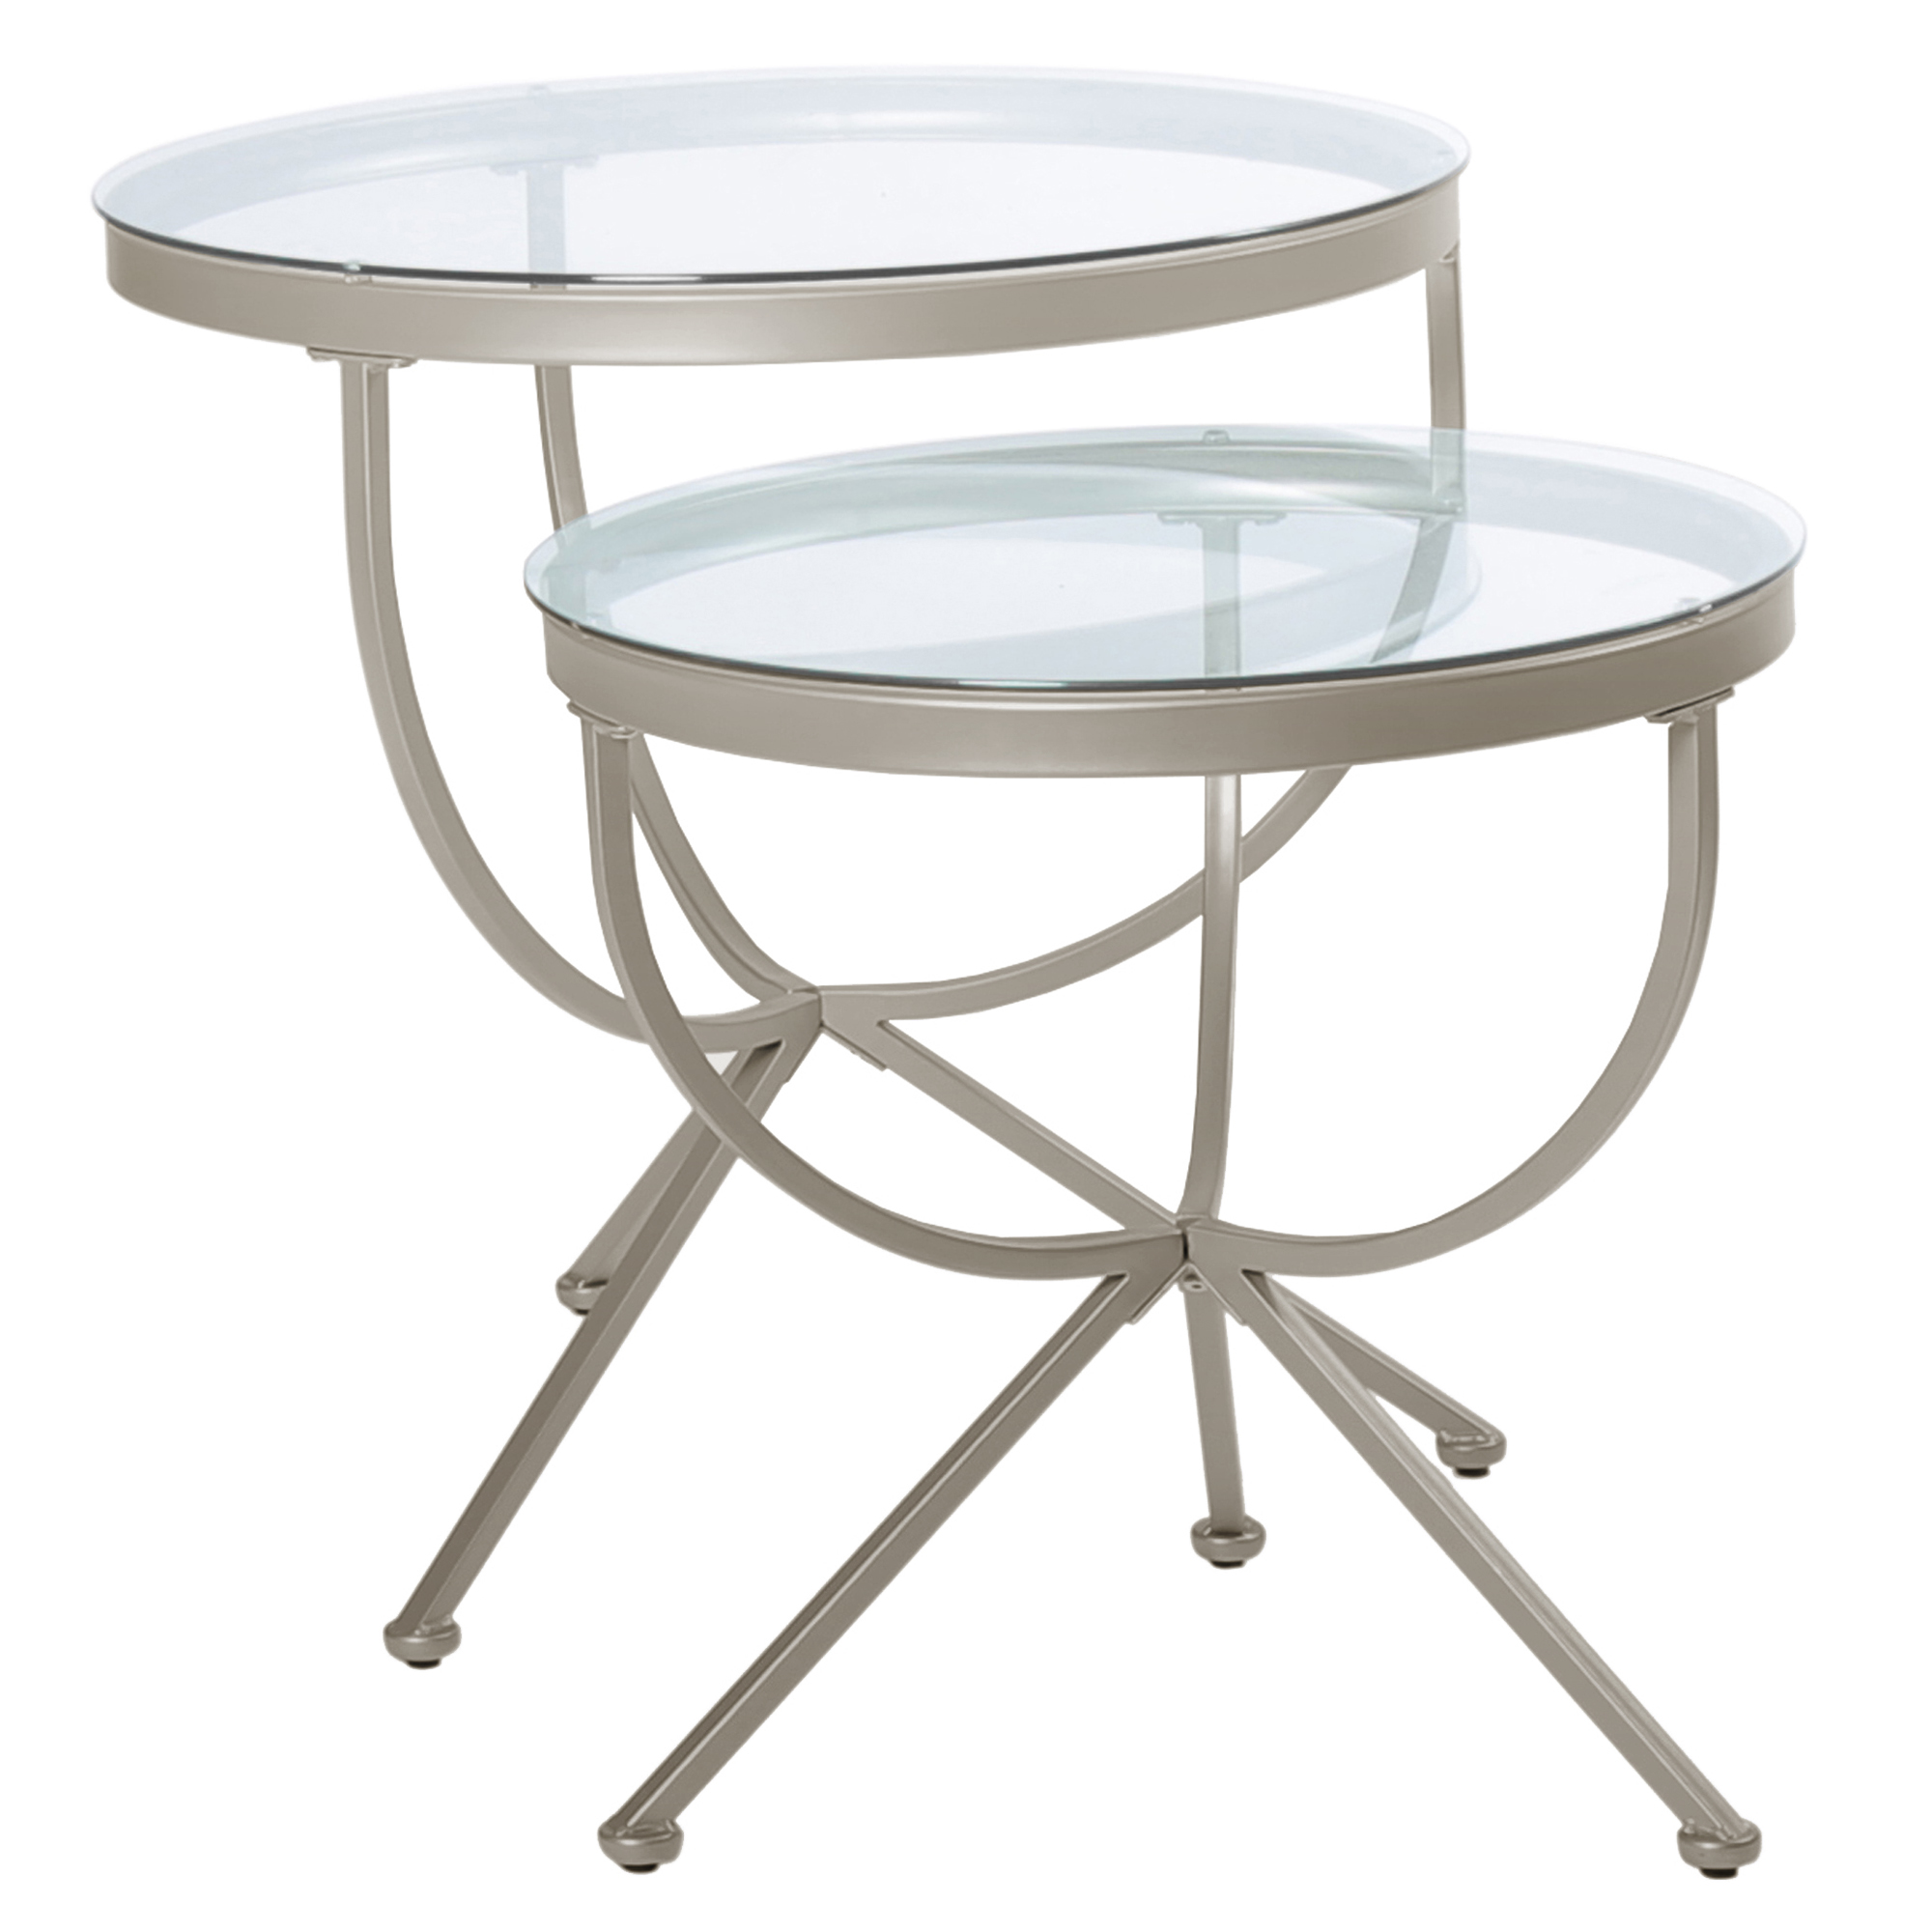 2 Pieces Nesting Table with Satin Silver Metal Base And Round Tempered Glass Top